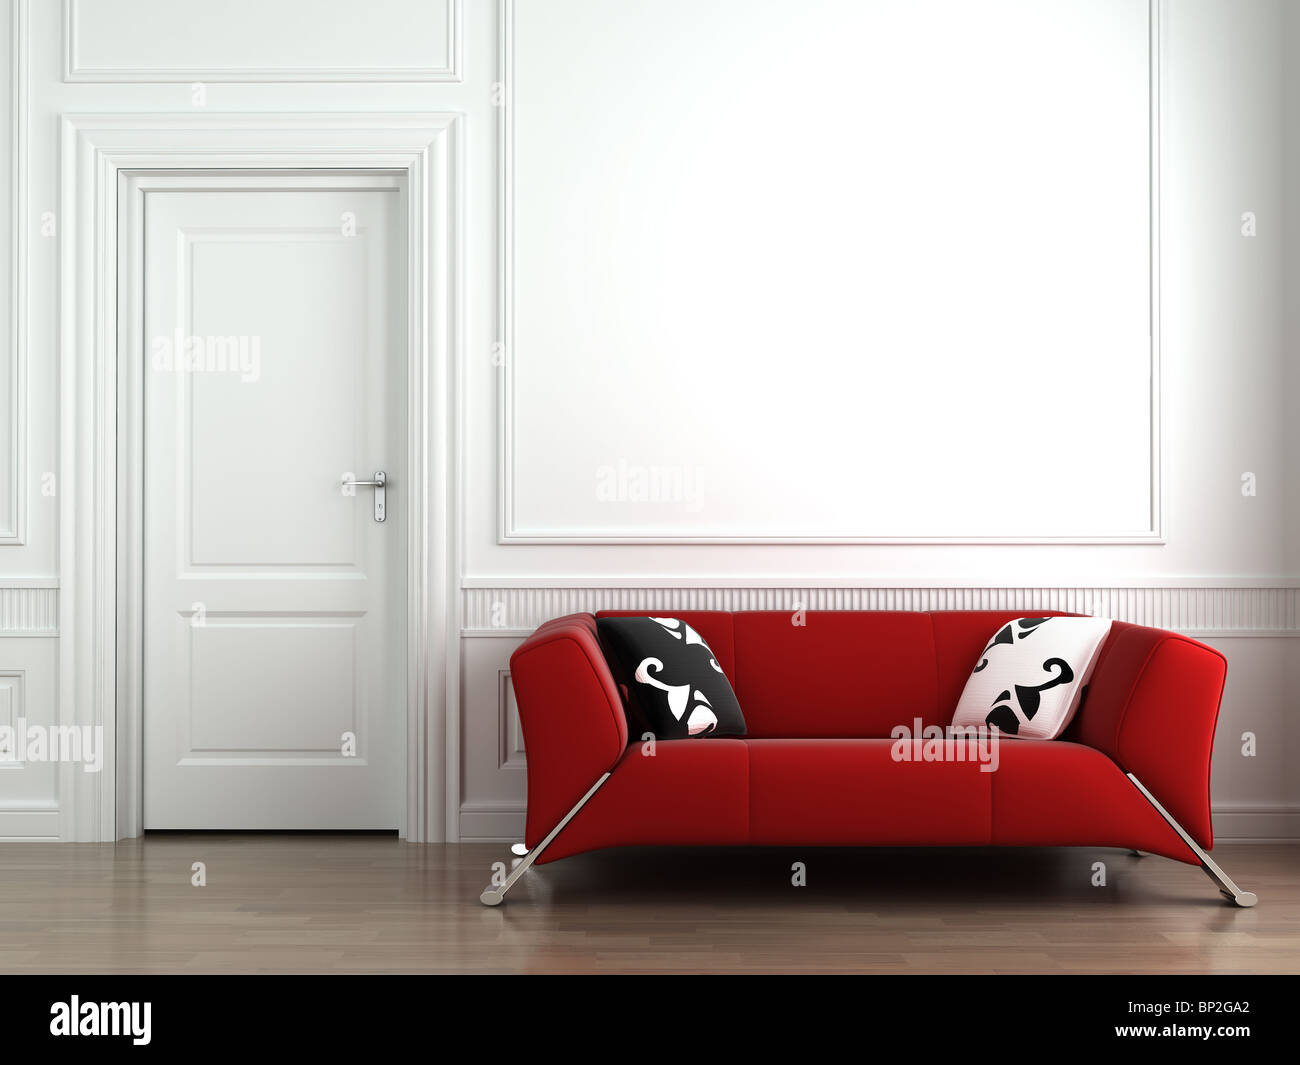 3d interior scene of a red couch on white classic wall - Stock Image